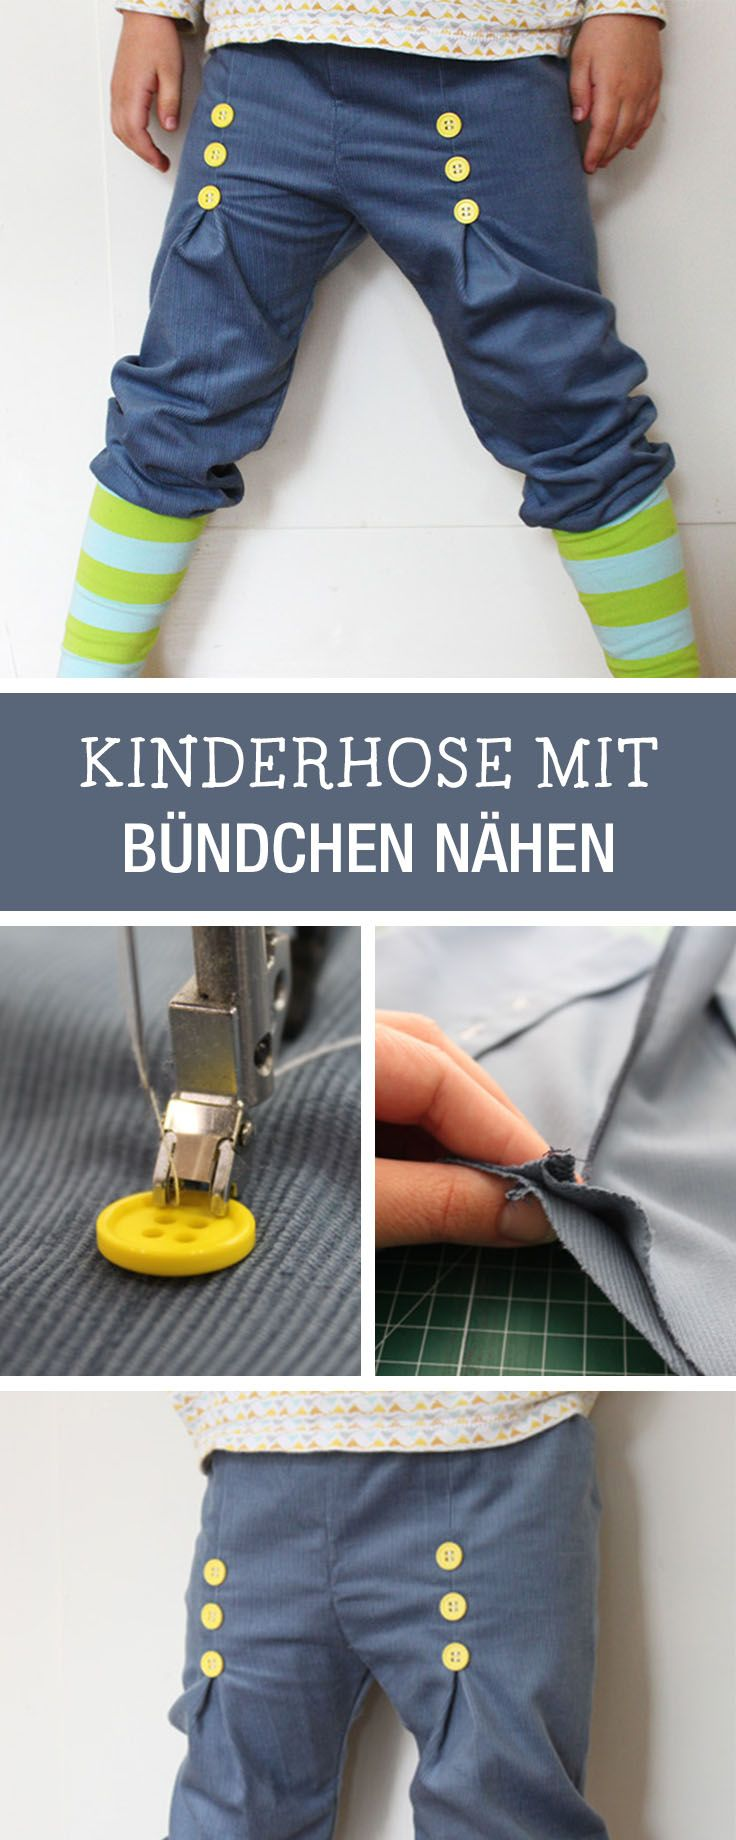 DIY-Anleitung: Kinderhose mit Bund nähen, Spielhose für Kinder / DIY tutorial: sewing pants with waistband, childrens trousers for playing via DaWanda.com